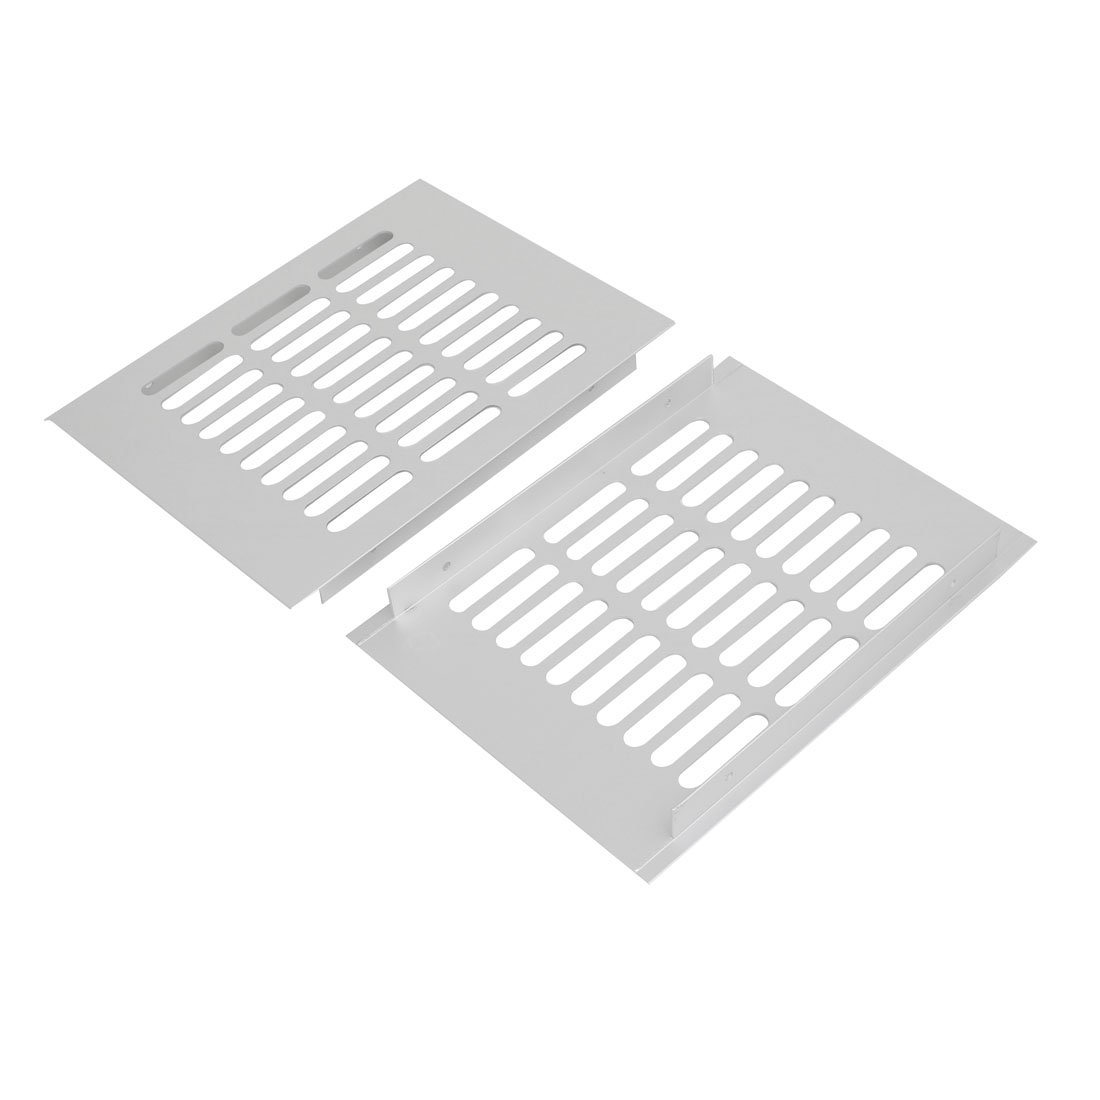 uxcell 2pcs 200mmx150mm Aluminum Alloy Air Vent Louvered Grill Cover Ventilation Grille